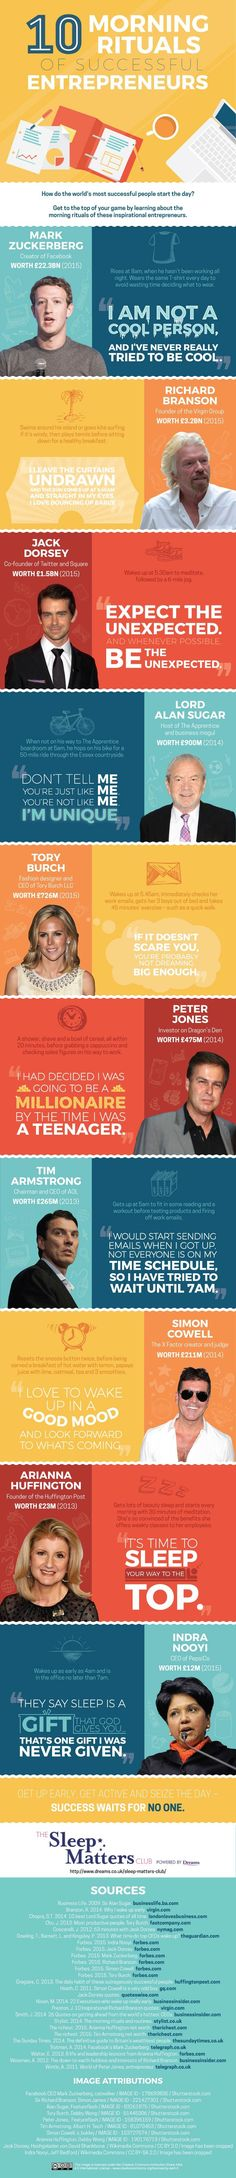 This infographic features the various morning rituals of 10 successful entrepreneurs, including Huffington Post founder Arianna Huffington , and Richard Branson founder of the Virgin group. Richard Branson, Business Tips, Online Business, Successful People, Successful Entrepreneurs, Successful Quotes, Successful Business, Leadership, Blogging